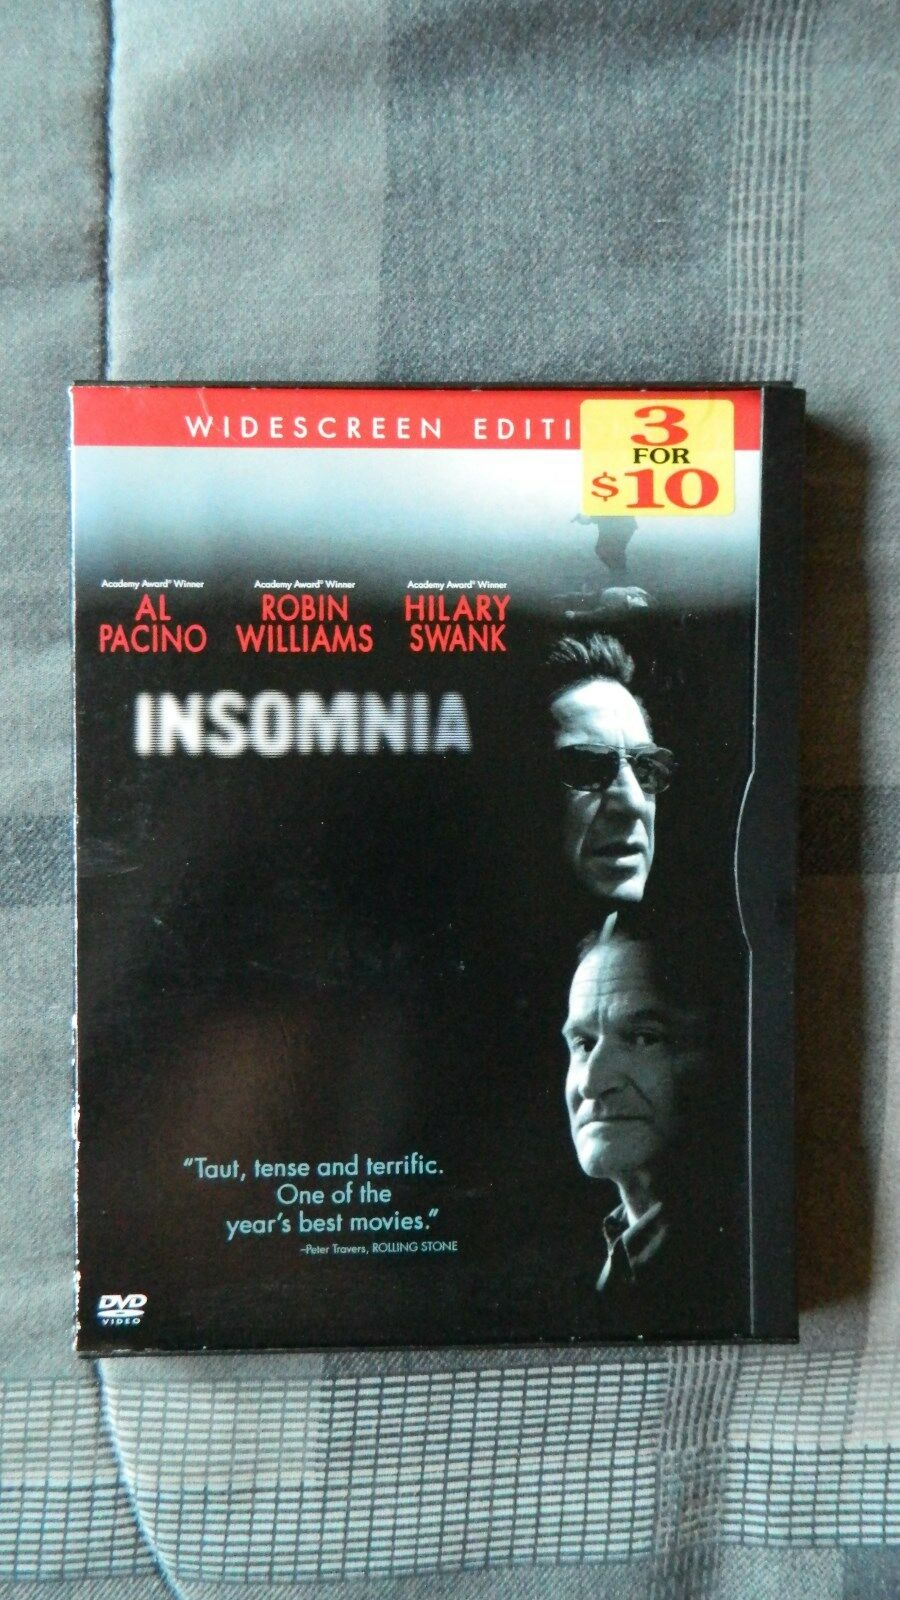 Insomnia (DVD, 2002, Widescreen, Al Pacino, Robin Williams, Hilary Swank) 1